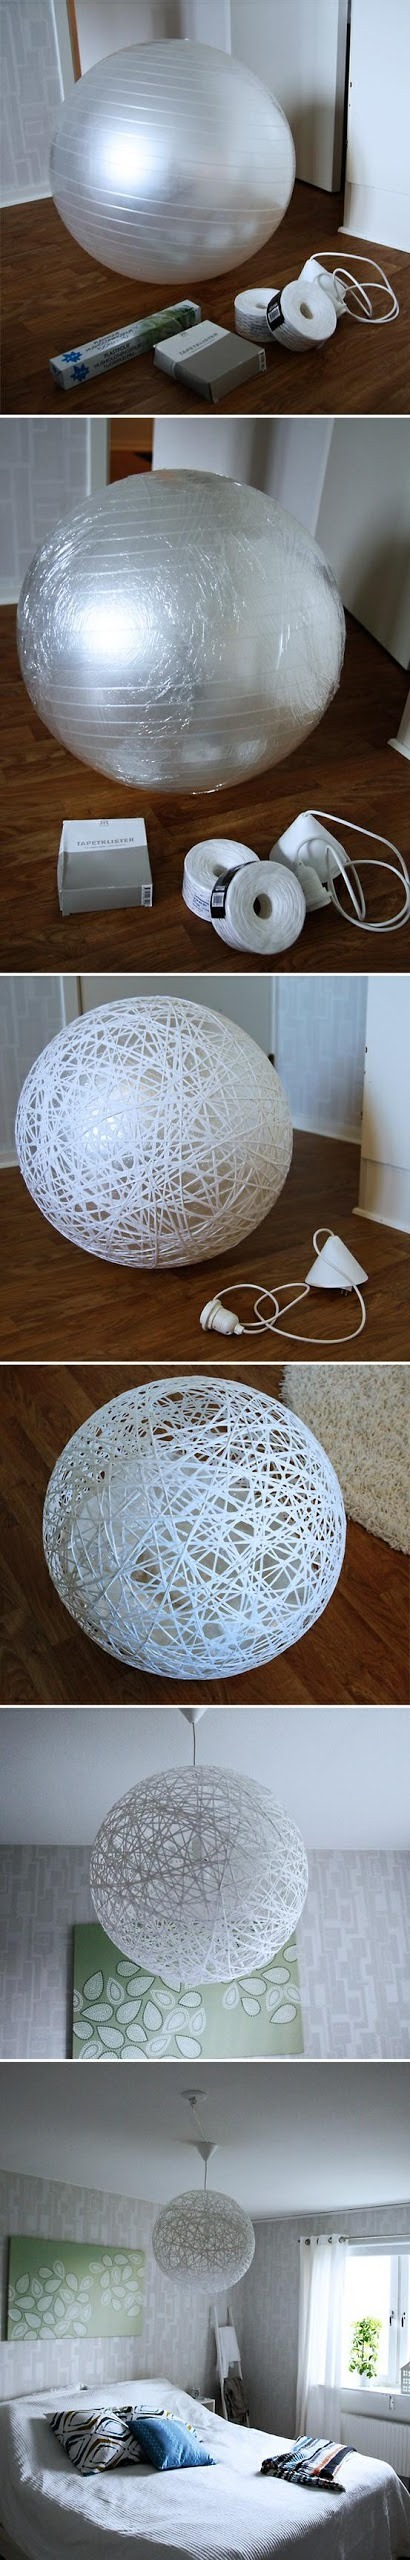 Do it yourself - make beautiful lampshade from string.jpg